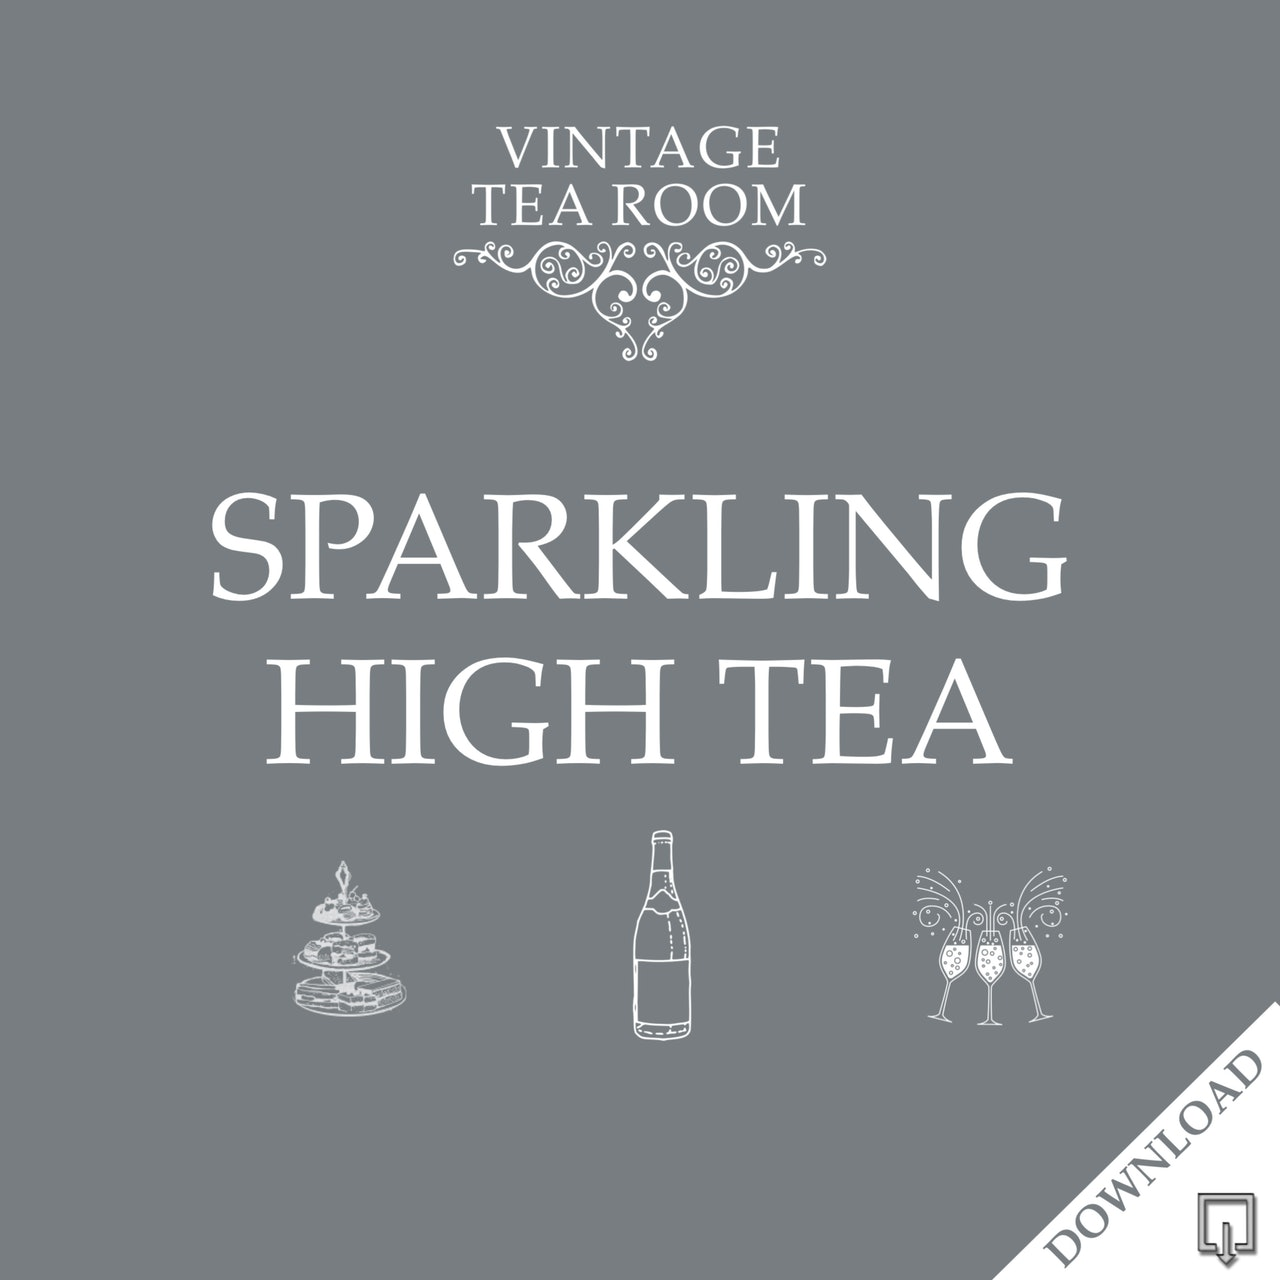 Vintage Sparkling High Tea For One - Downloadable Voucher